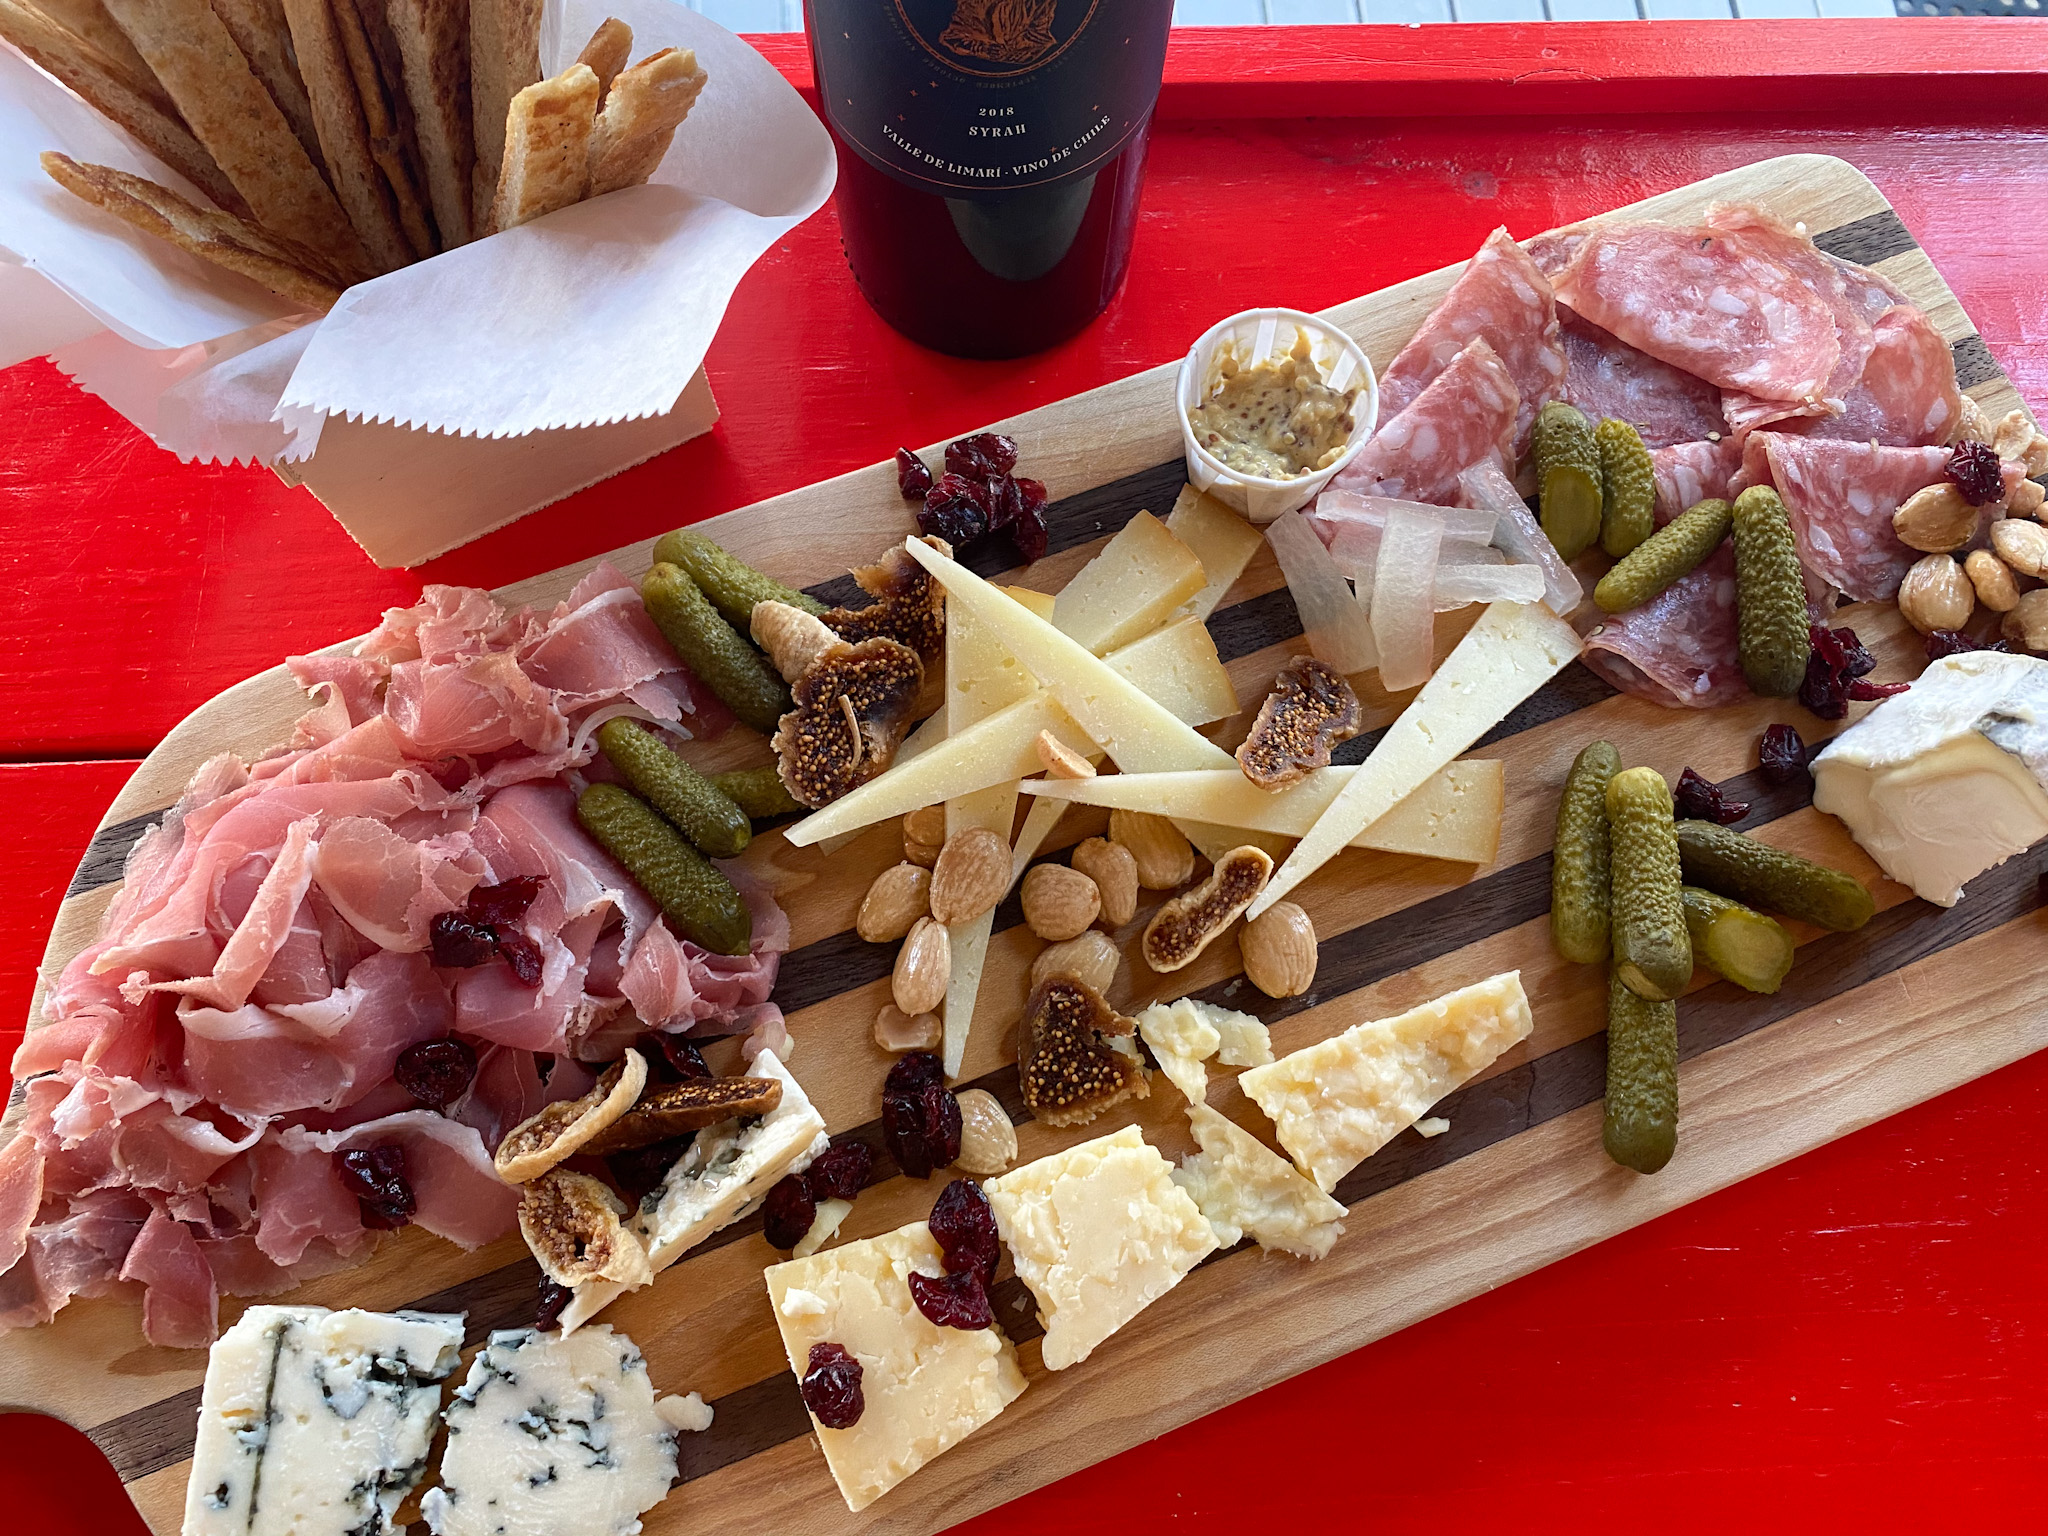 Chef's choice cheese and charcuterie board